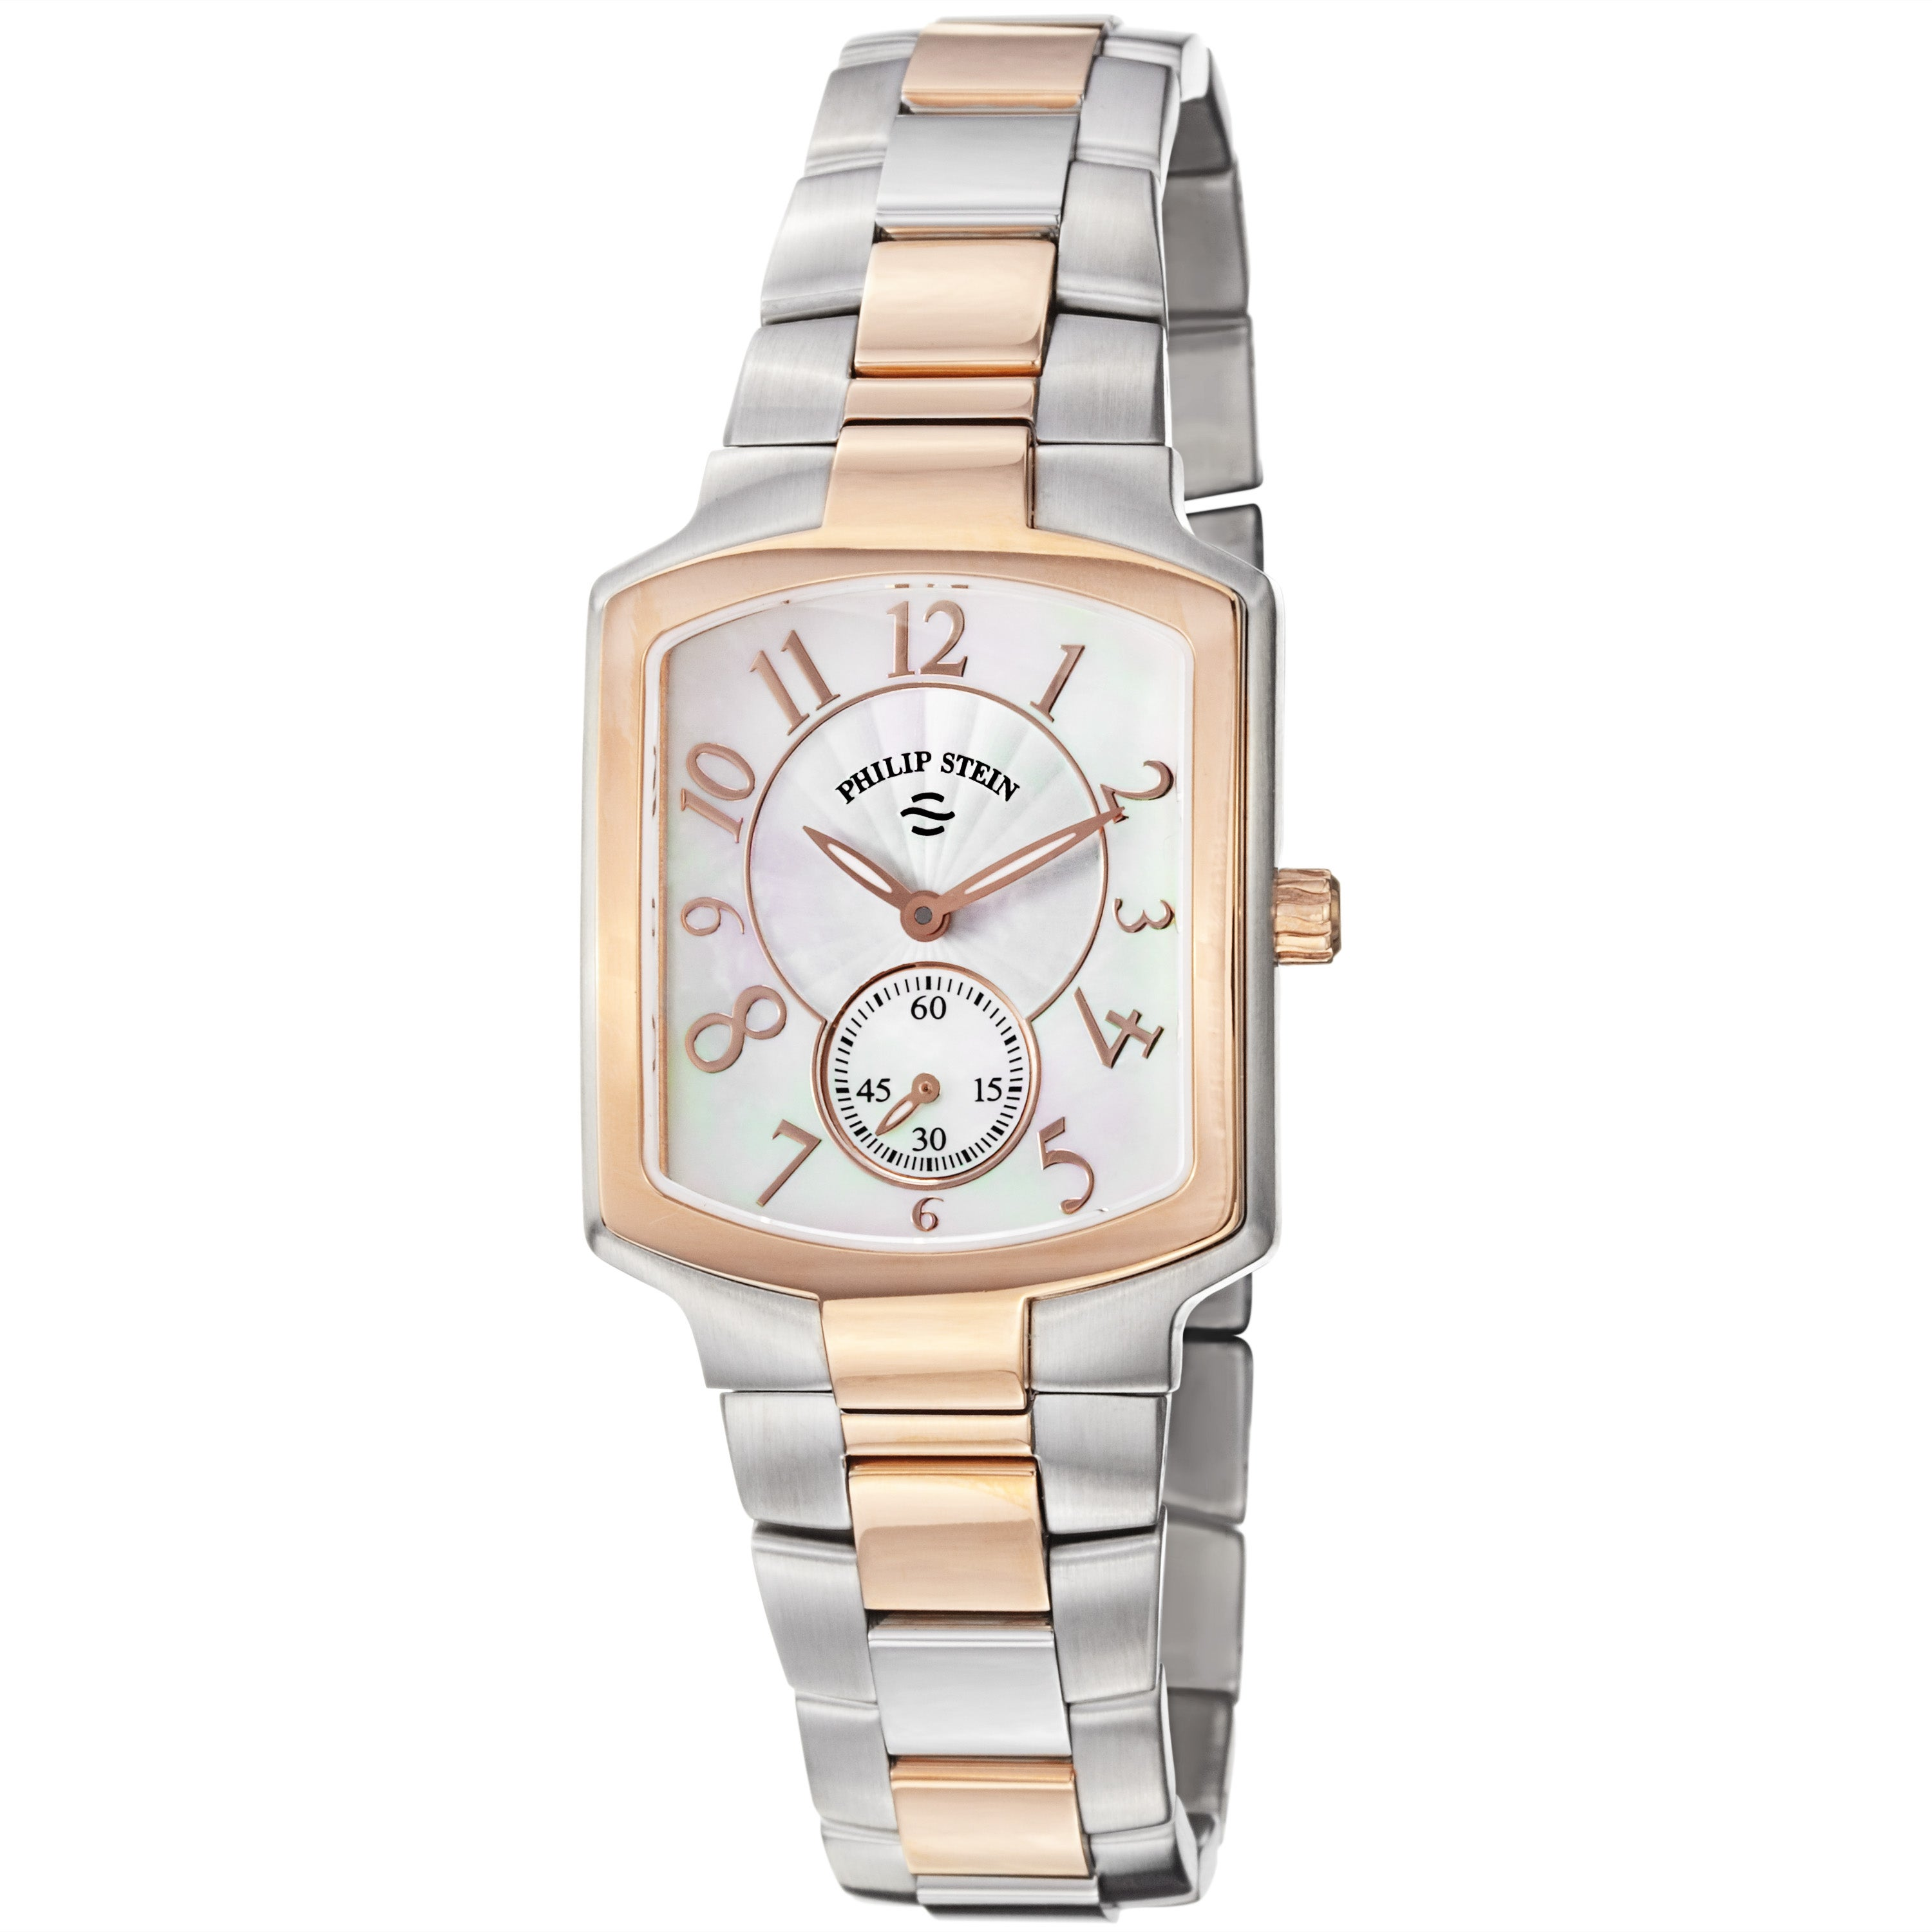 Philip stein women 39 s 39 signature 39 two tone stainless steel watch 14173815 for Philip stein watches